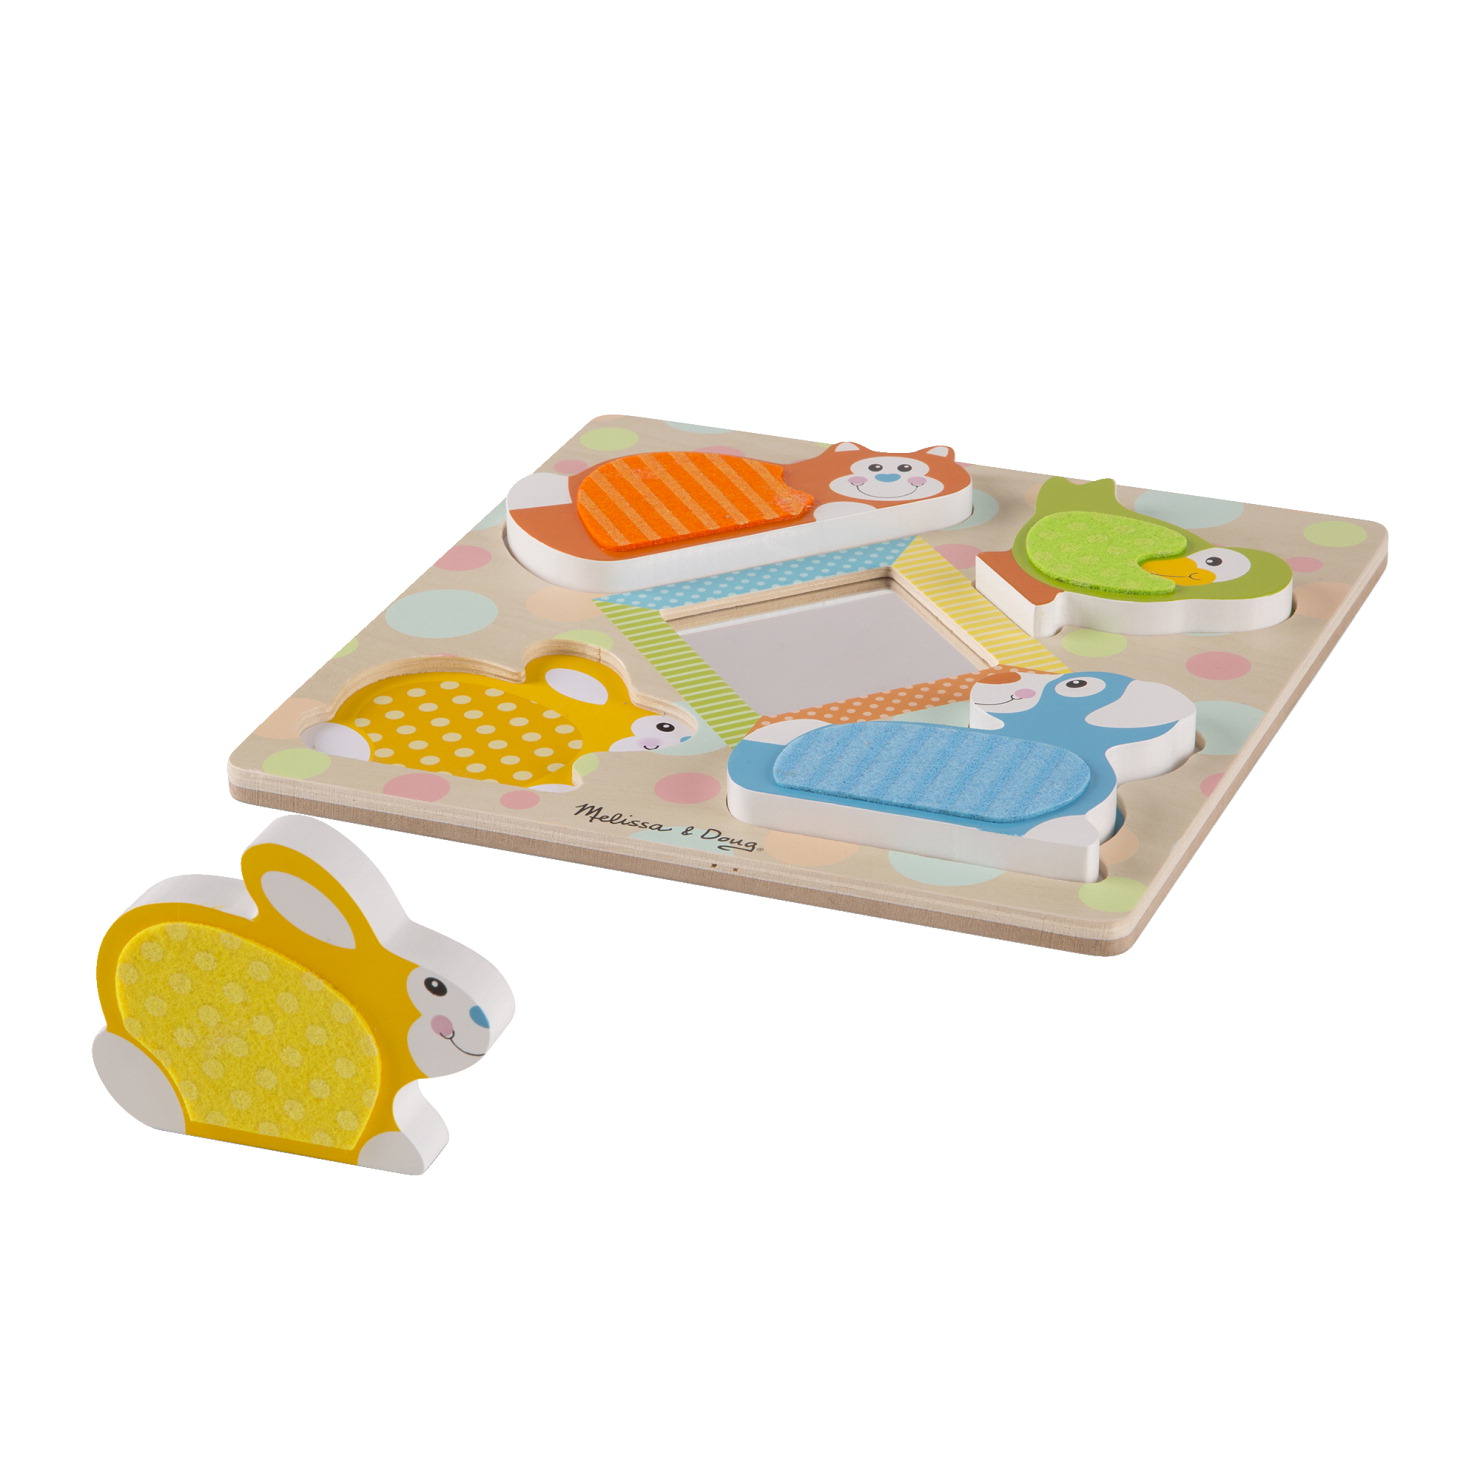 Melissa & Doug First Play Wooden Touch and Feel Peek-a-Boo Pets Puzzle